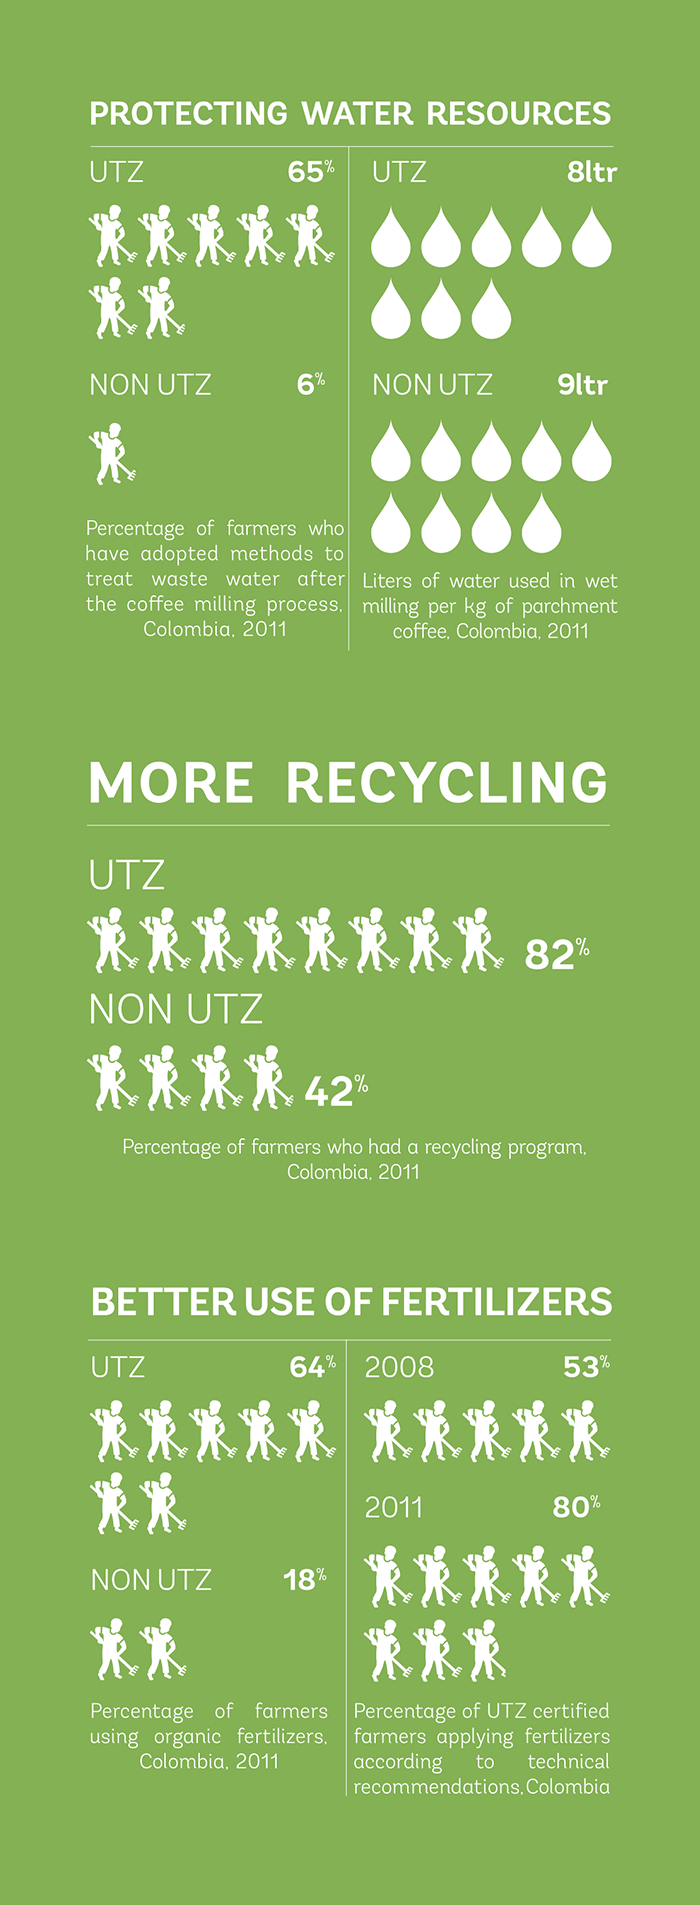 better-environment_colombia_impact_UTZ